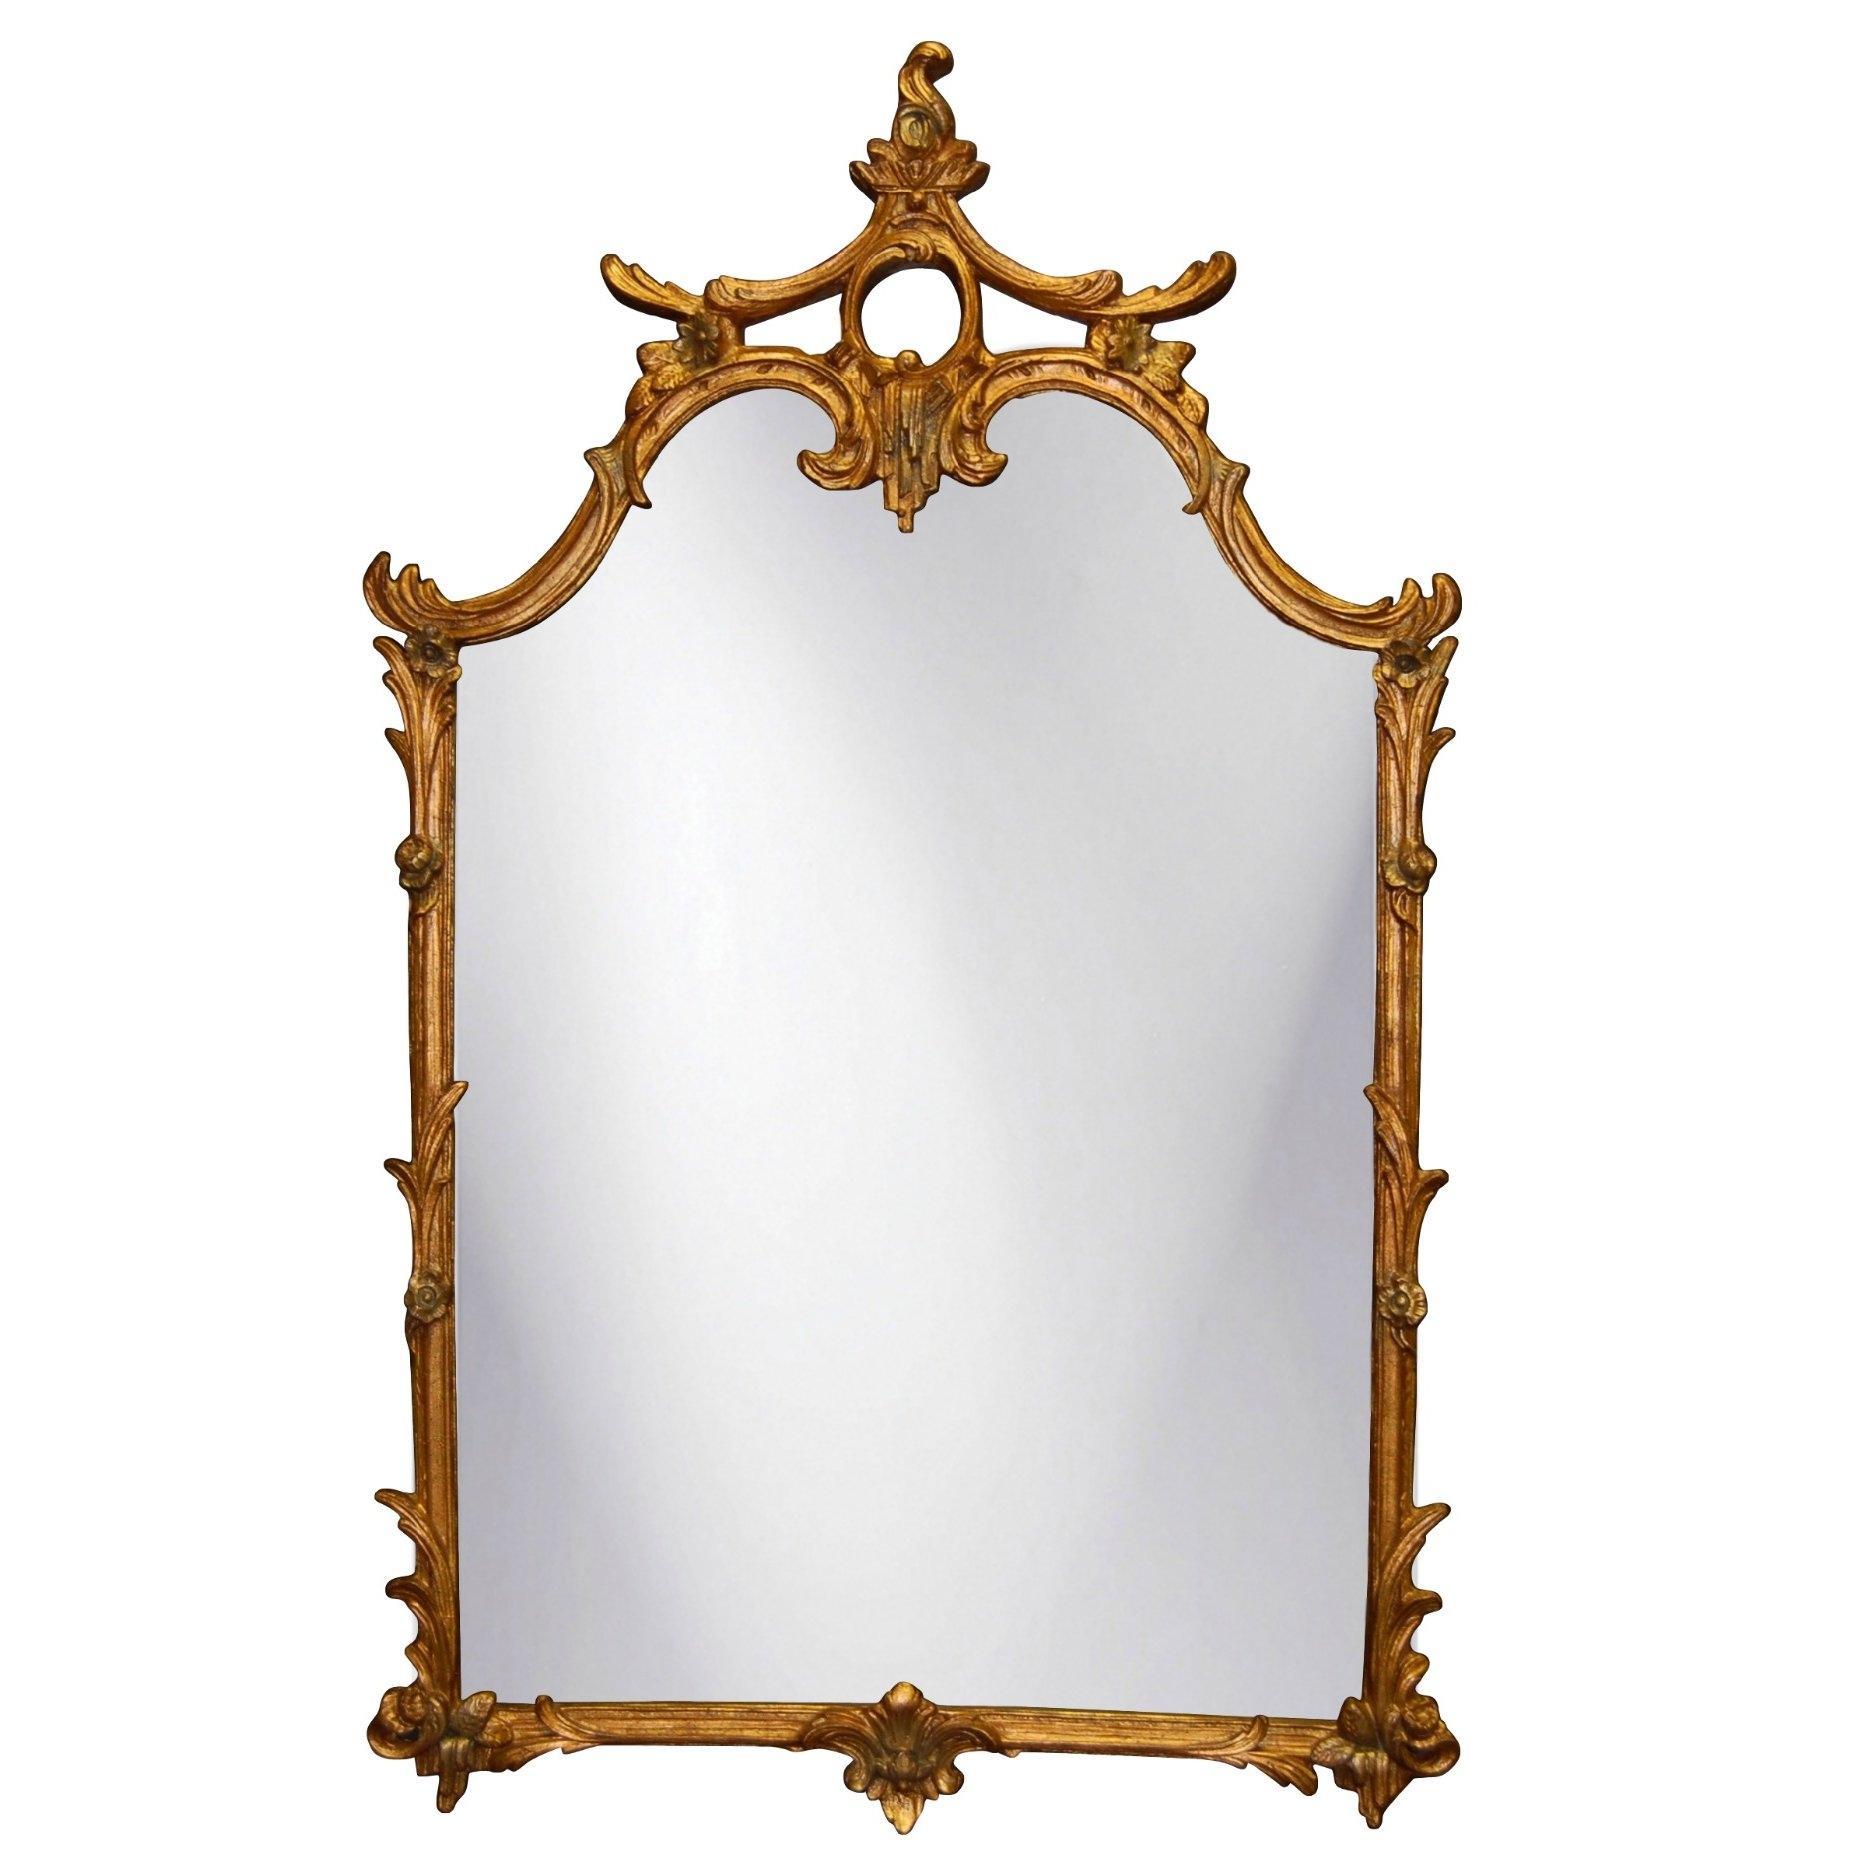 Hickory Manor House Ornate Wall Mirror Reviews Wayfair Within Ornate Wall Mirror (Image 4 of 15)